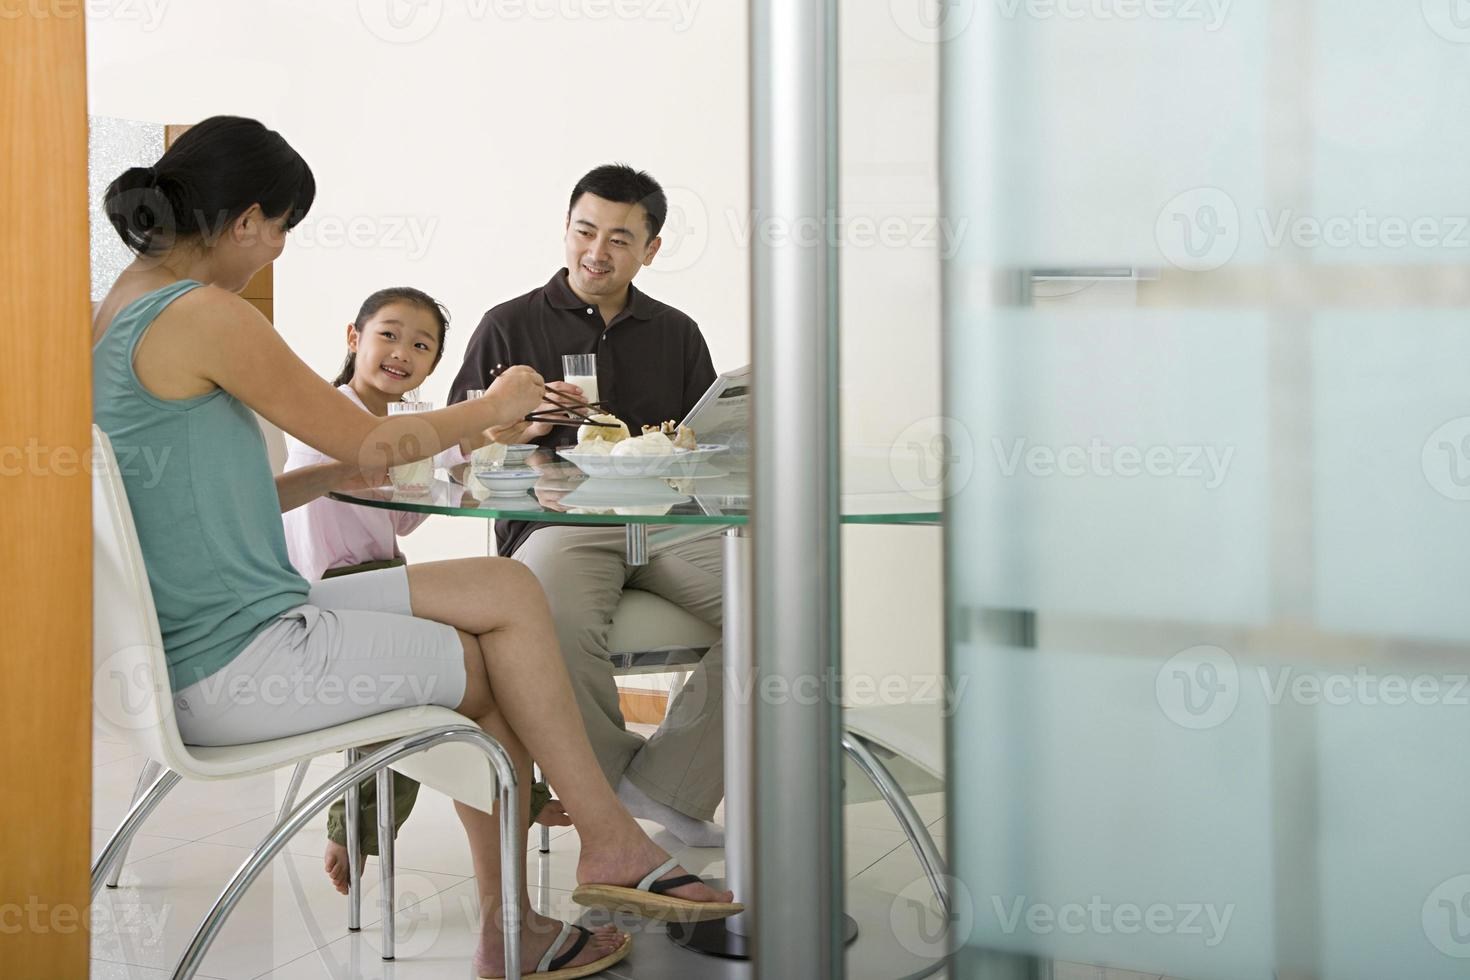 Family having a meal photo